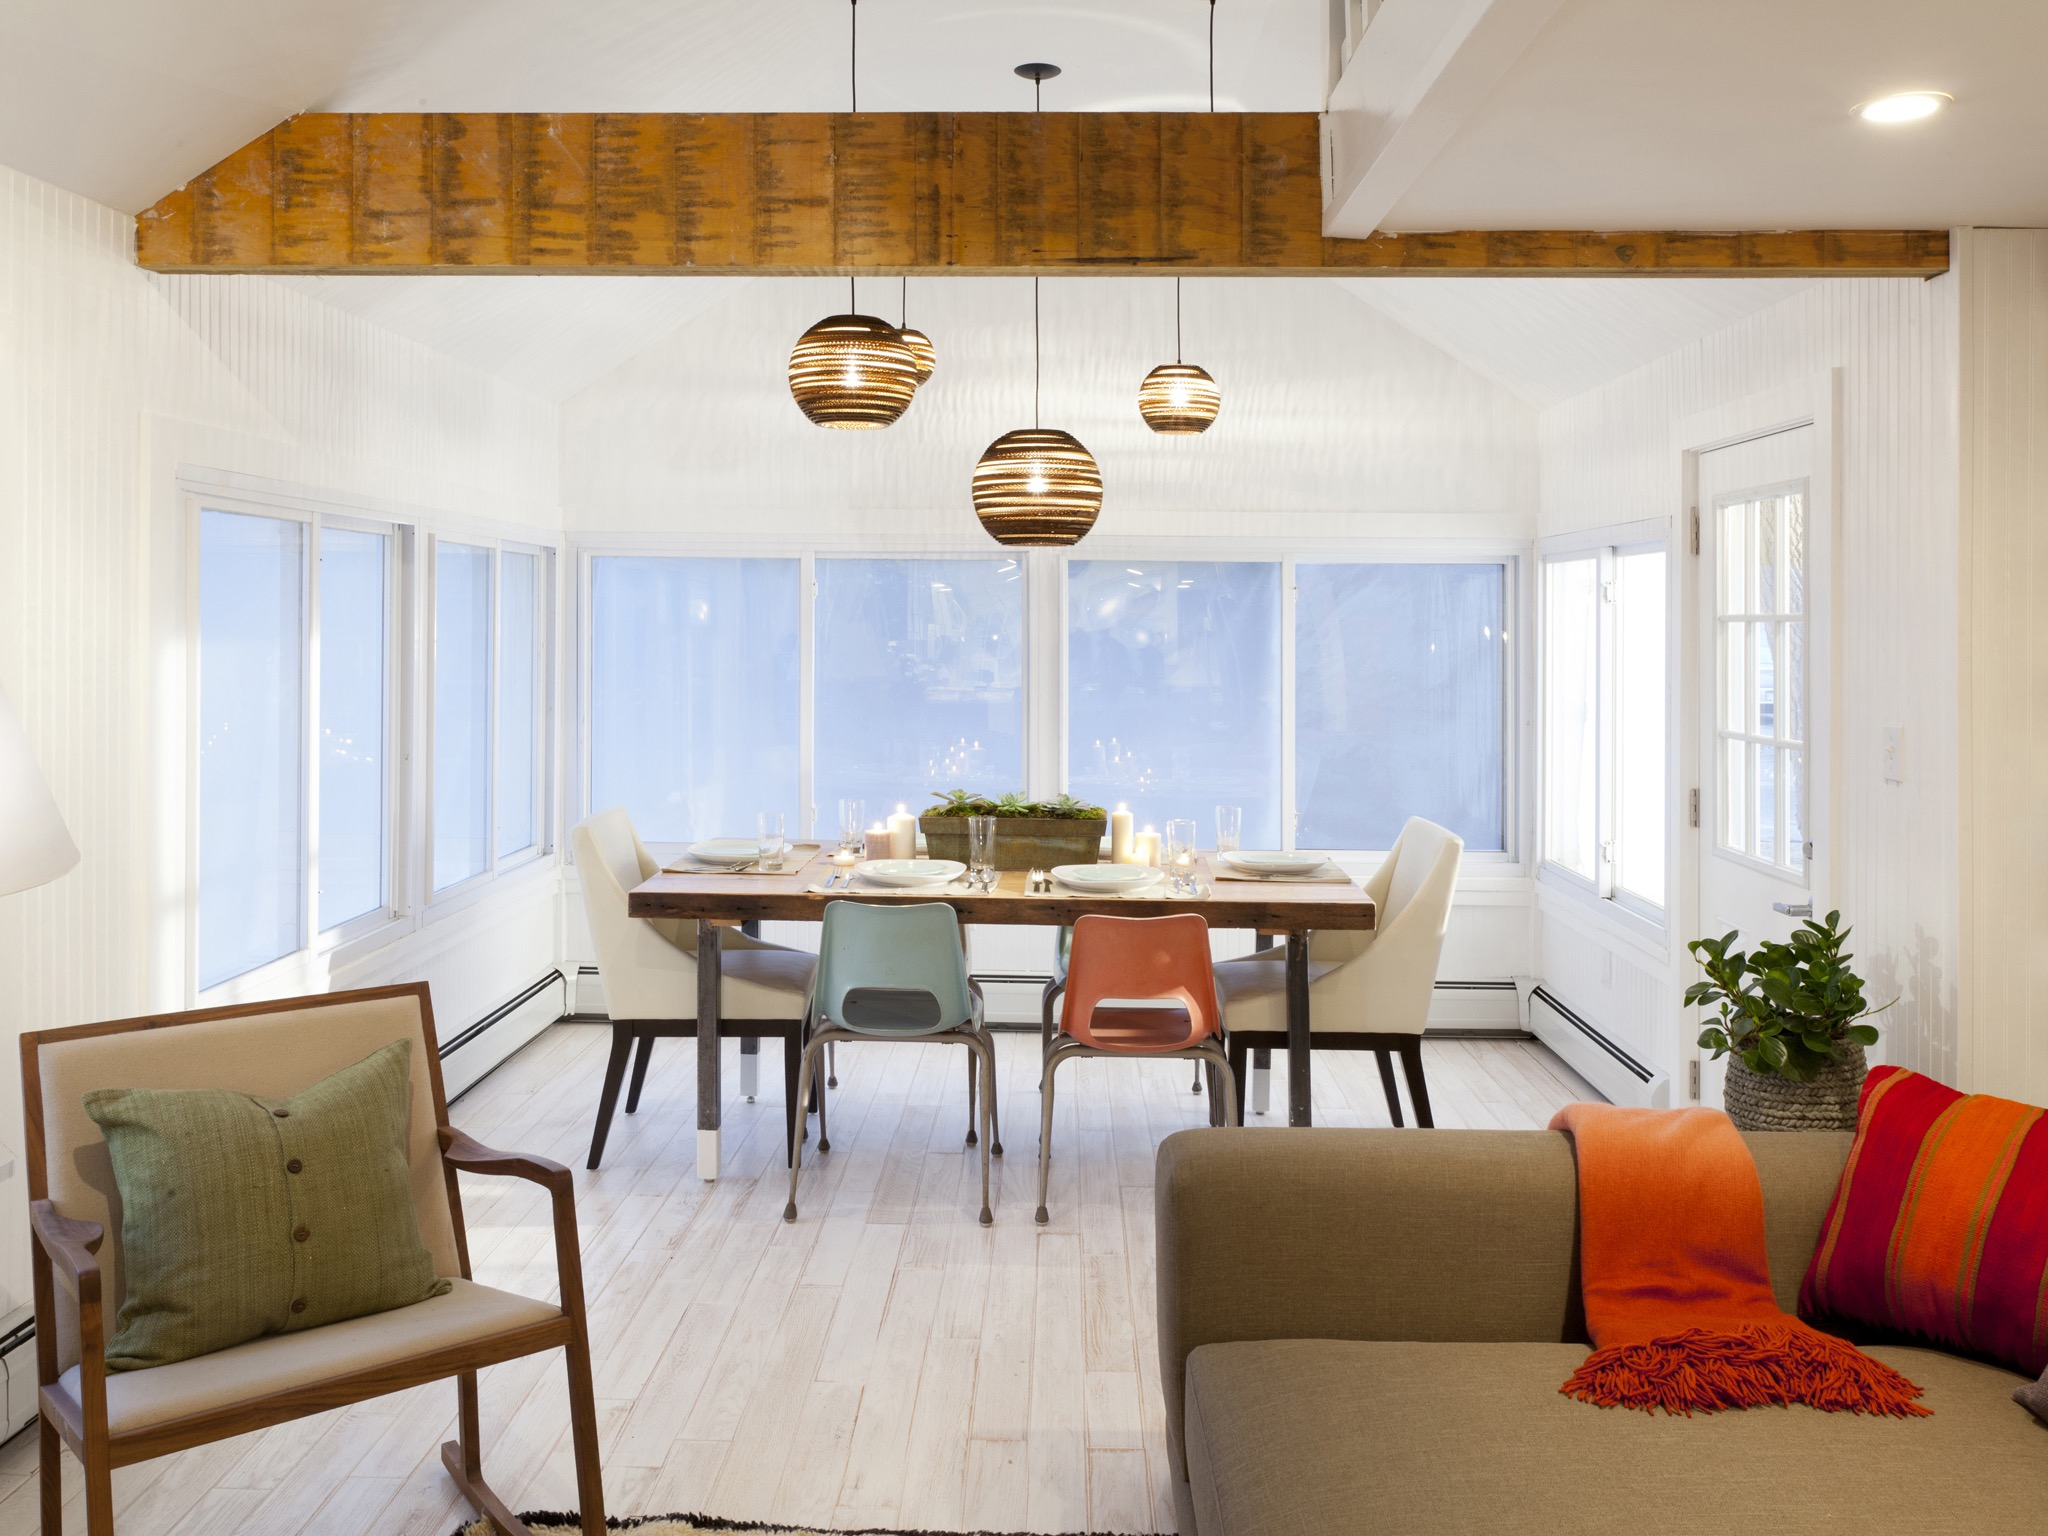 Midcentury Modern Dining And Living Room Interior Combo (View 12 of 34)